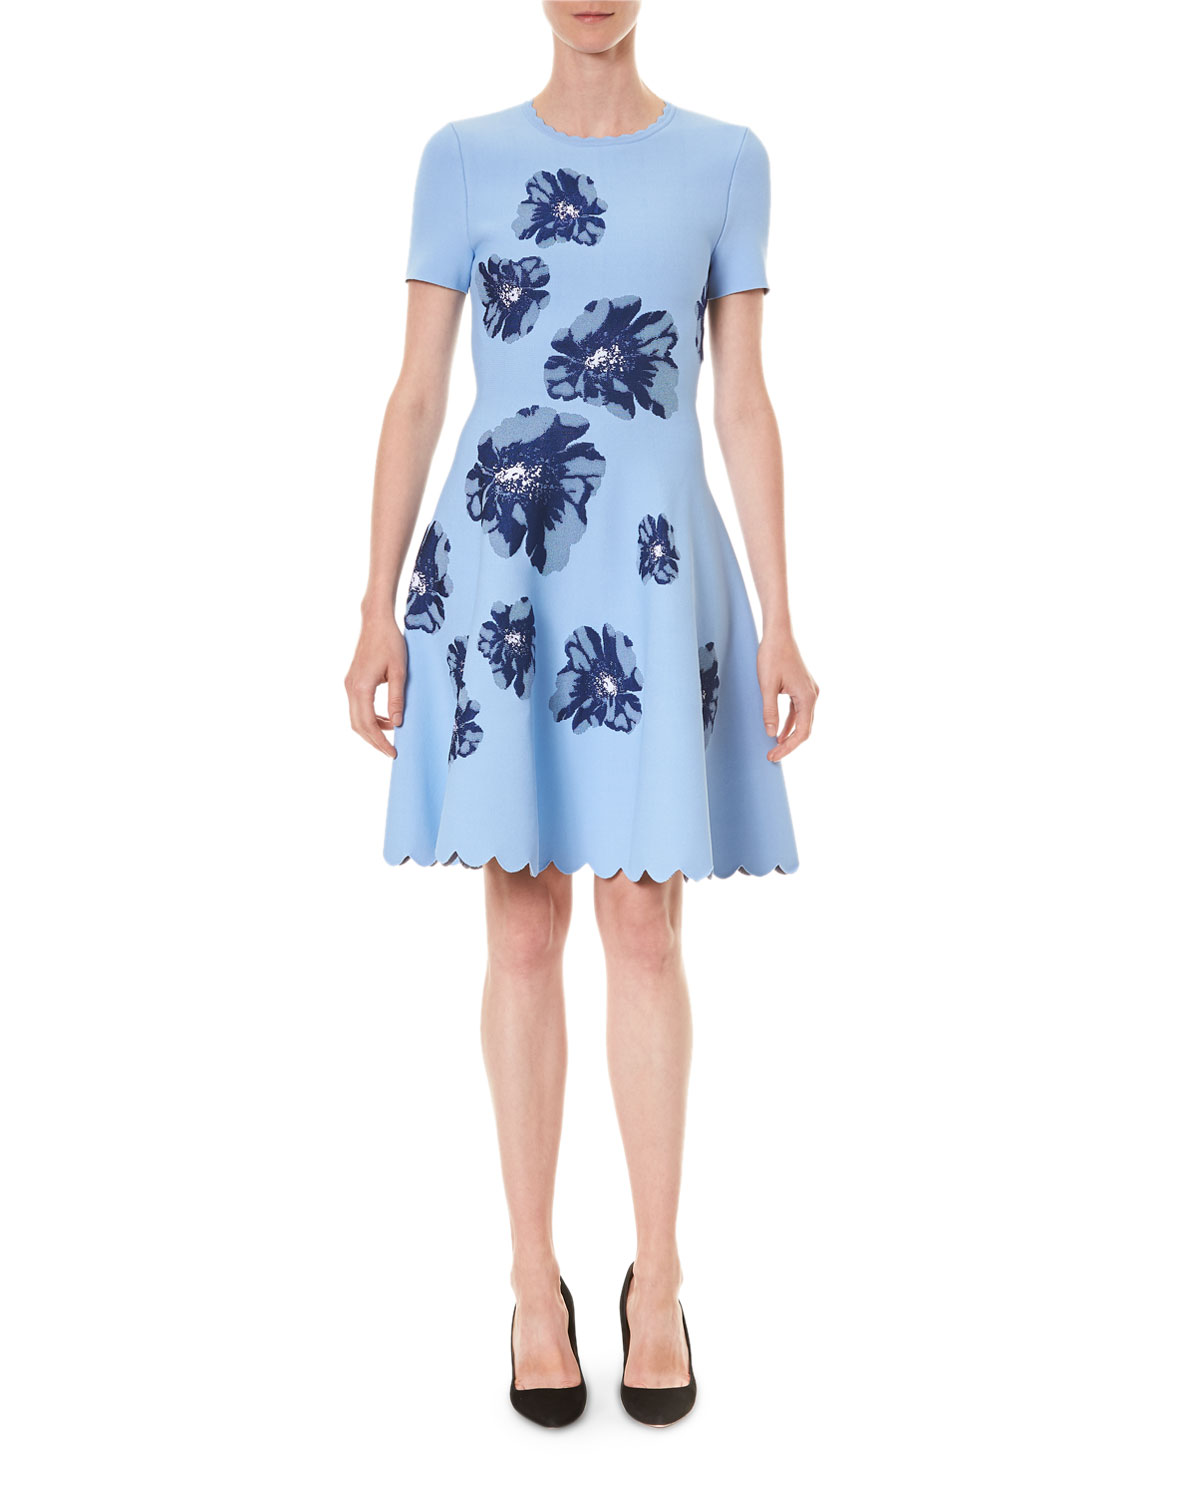 Carolina Herrera Floral Short-Sleeve Fit And Flare Dress